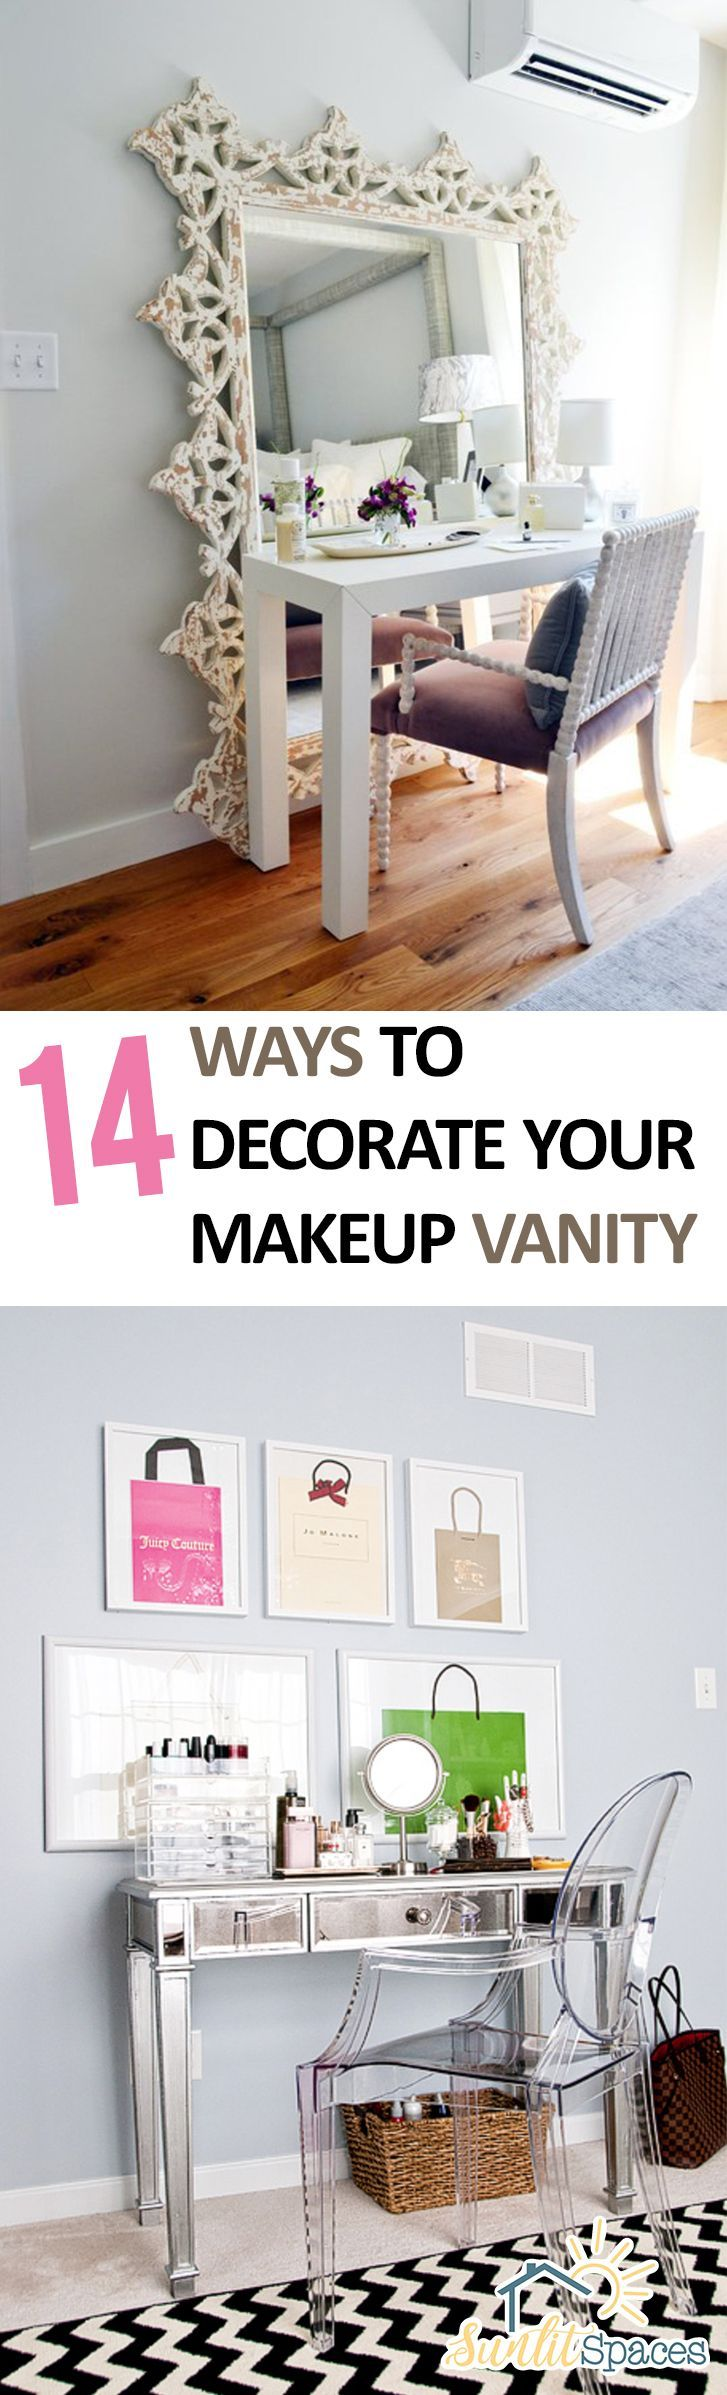 Makeup Vanity, How to Decorate Your Makeup Vanity, Home Decor Ideas, DIY Makeup Vanity, Makeup Vanity Ideas, Makeup Tips and Tricks, Decorating, Bathroom Decor, Popular Pin